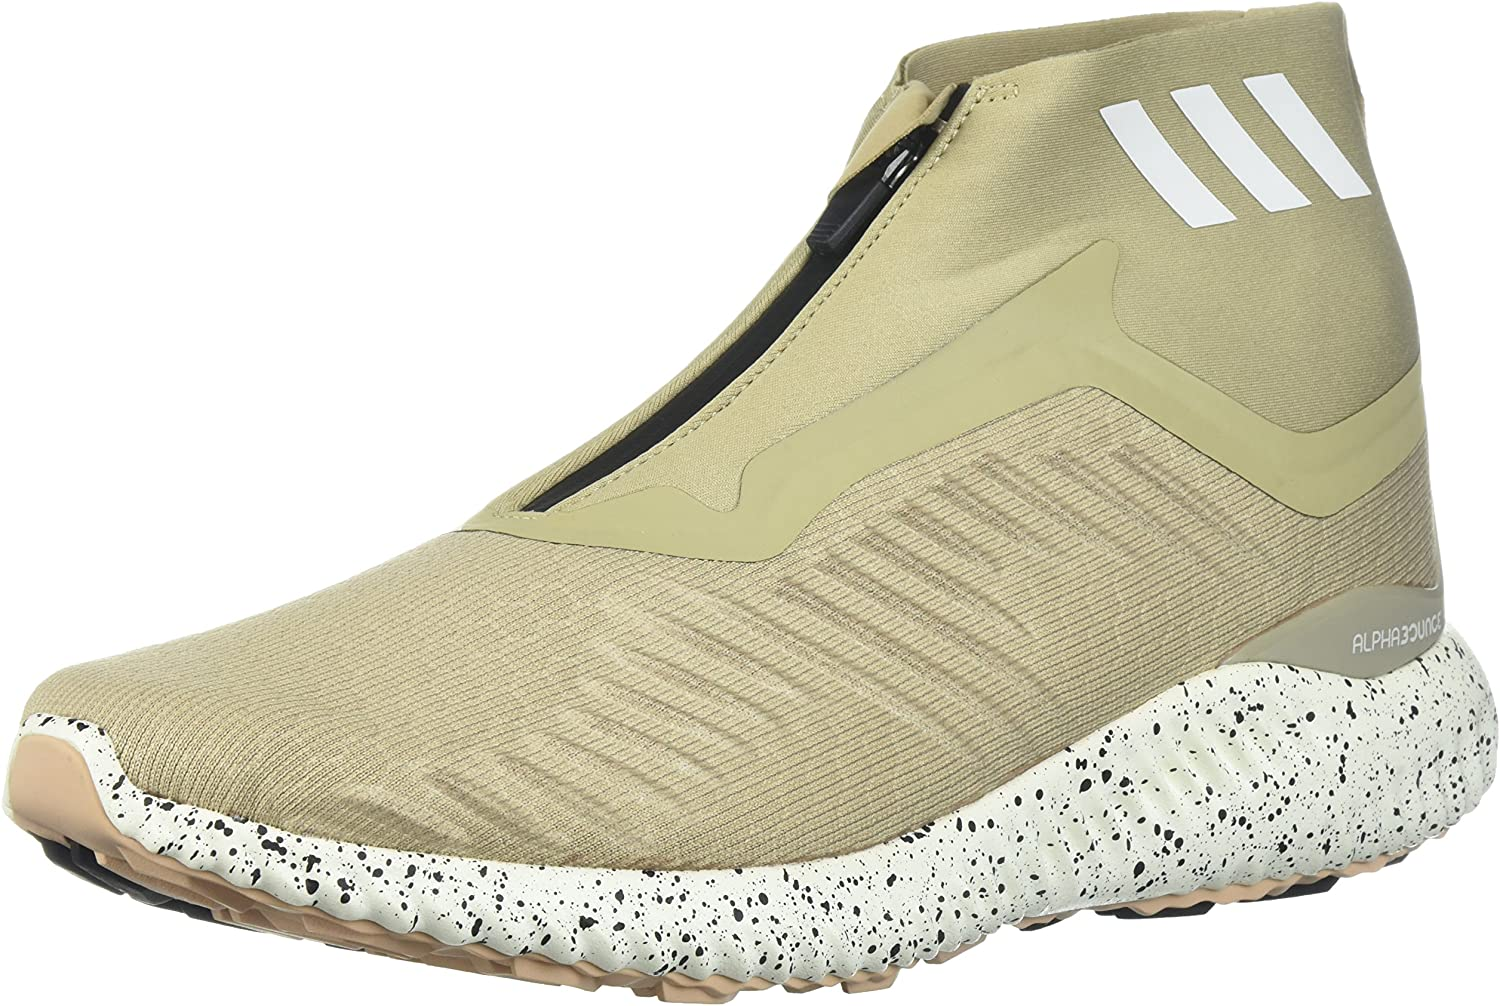 adidas Men s Alphabounce Zip m Running Shoe